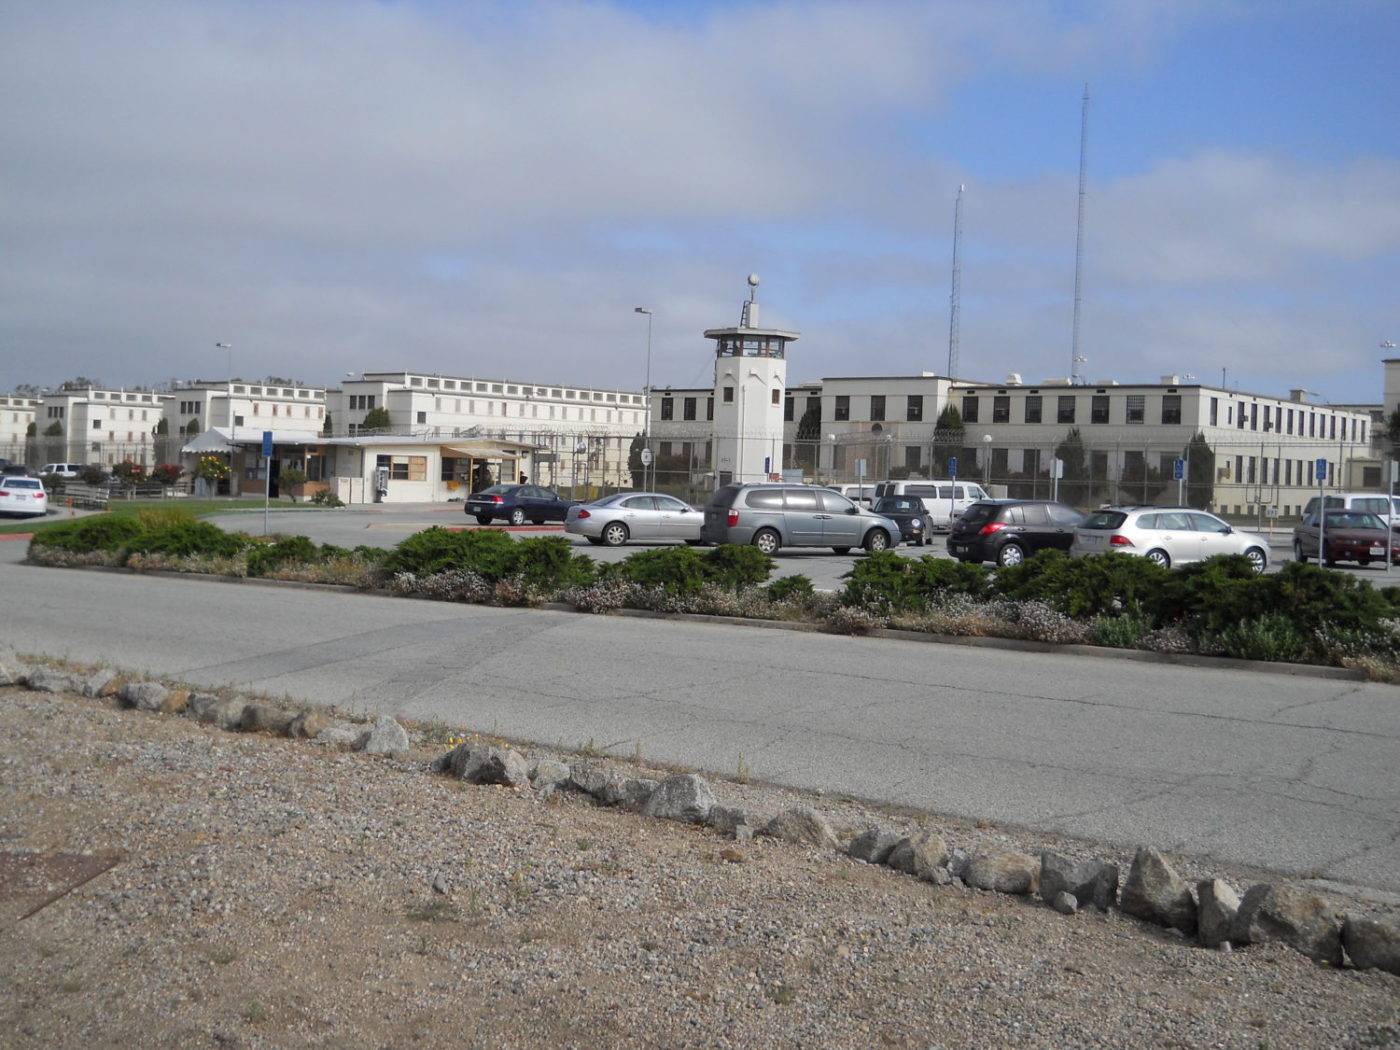 Soledad-CTF-prison-1400x1050, They came for us in the morning: What prison officials don't want you to know about the raid on 200+ incarcerated Black people at Soledad, Behind Enemy Lines